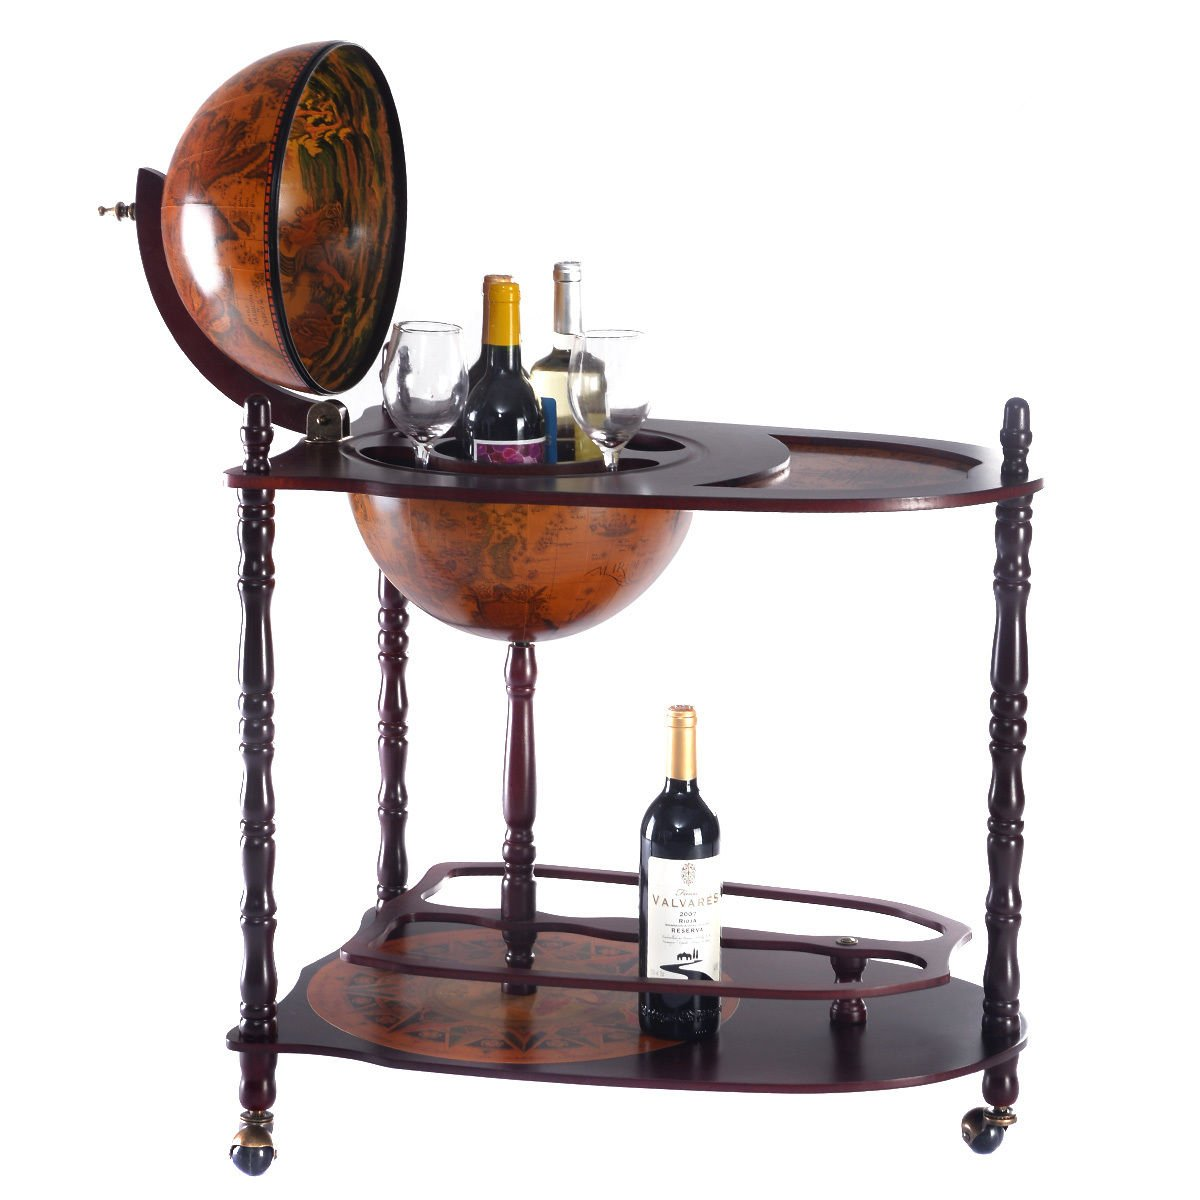 Antique Style 16th Century Italian Rack 34 Inch High Wood Globe Wine Liquor Bar Stand with Bottle Shelf A Unique Outlook Will Bring Highlight To Your Lifestyle